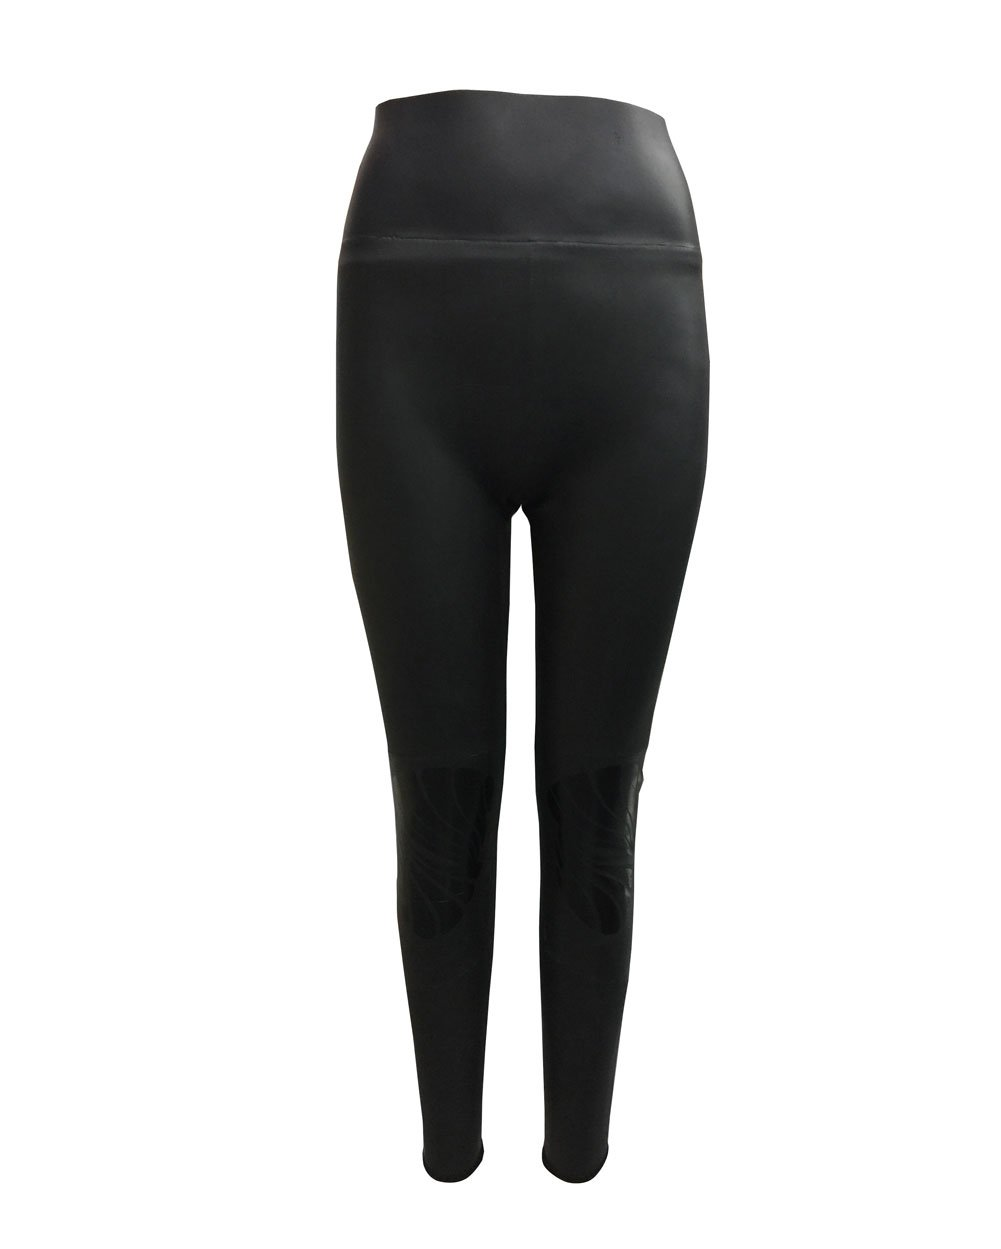 Divecica Woman Wetsuit Pants 5mm CR Smooth Skin Neoprene Warmth Pants for Surfing Diving (2XL)